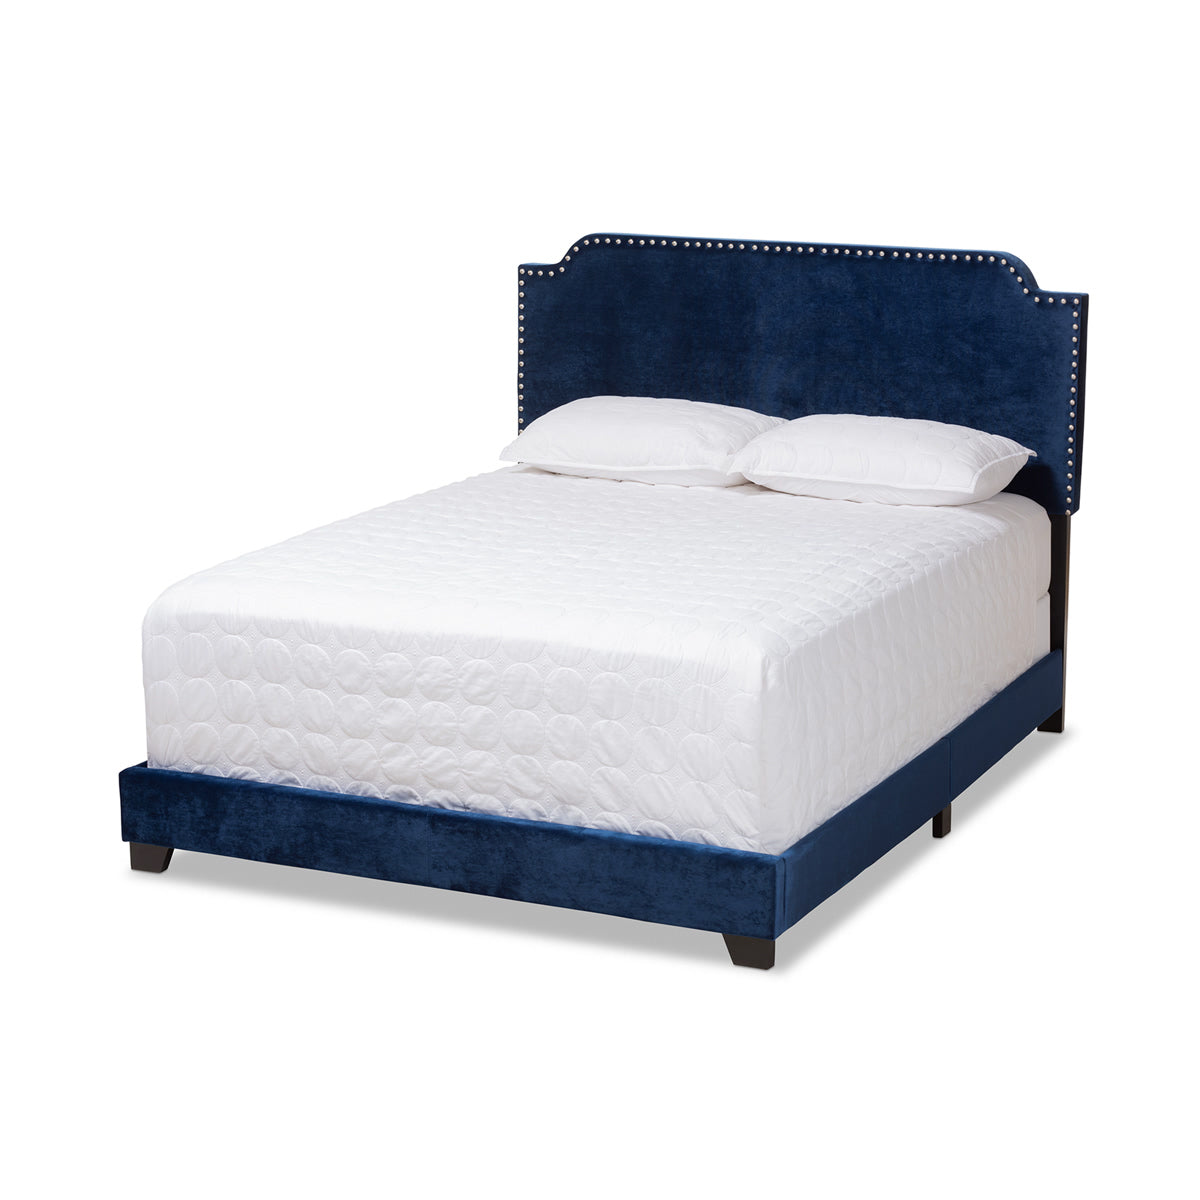 Baxton Studio Darcy Luxe and Glamour Navy Velvet Upholstered King Size Bed Baxton Studio-0-Minimal And Modern - 1